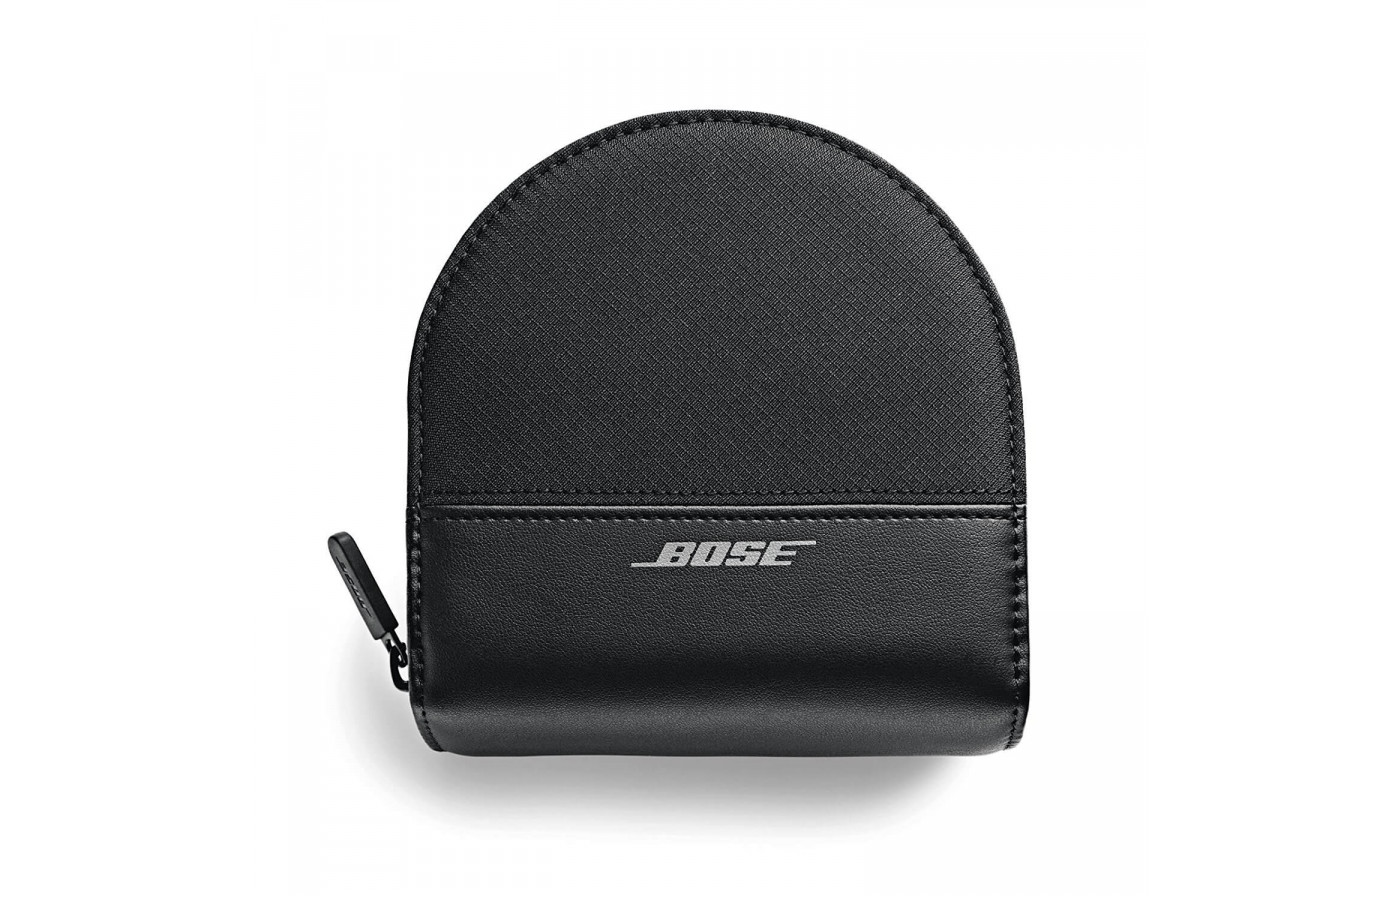 Bose SoundLink On-Ear Bluetooth Headphones with Microphone, Triple Black Case